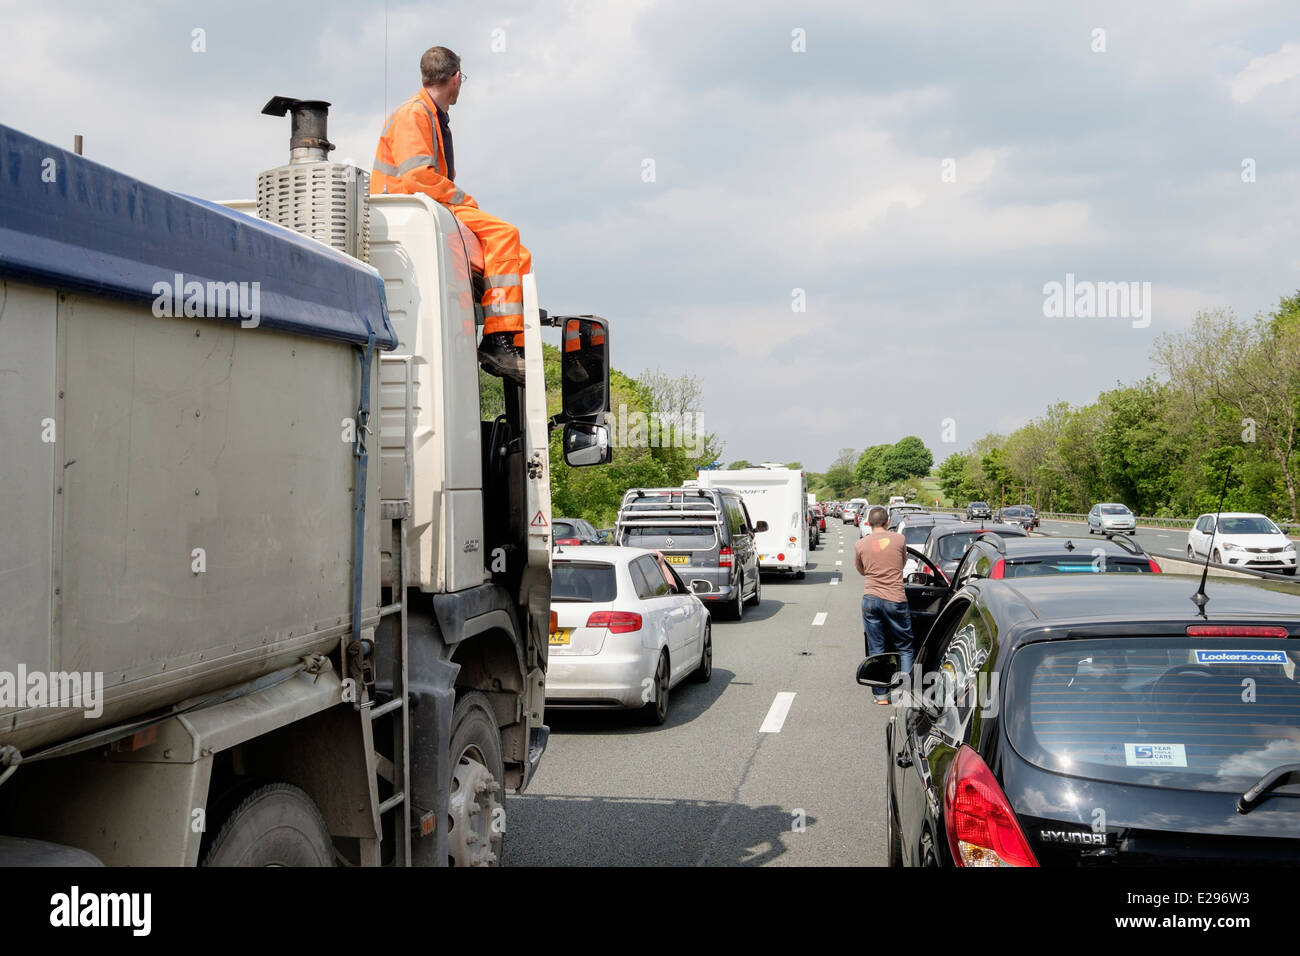 Stationary vehicles in a traffic jam on M6 motorway due to an accident causing a long delay. England UK Britain - Stock Image